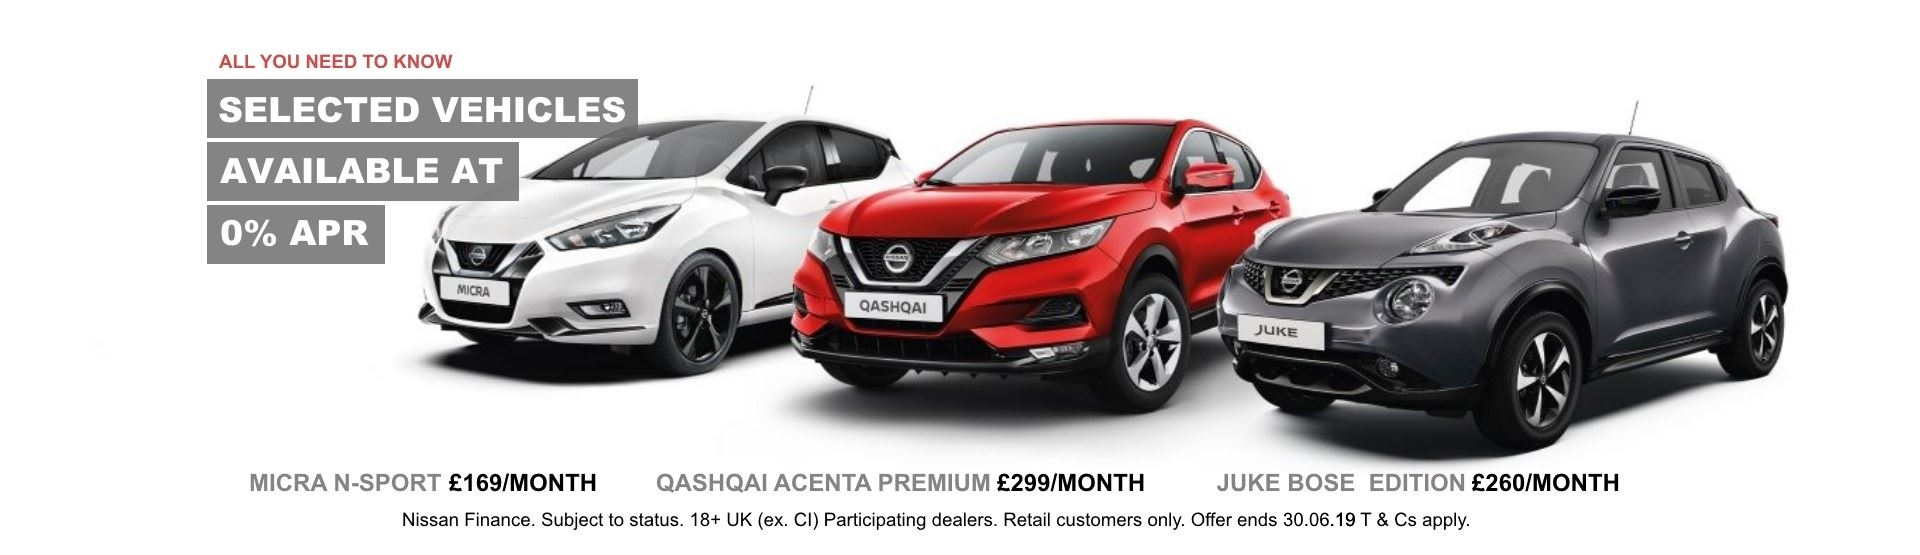 Nissan qashqai clipart image black and white library Polesworth Garage | New Cars | Nissan Micra Juke Qashqai Deals April ... image black and white library